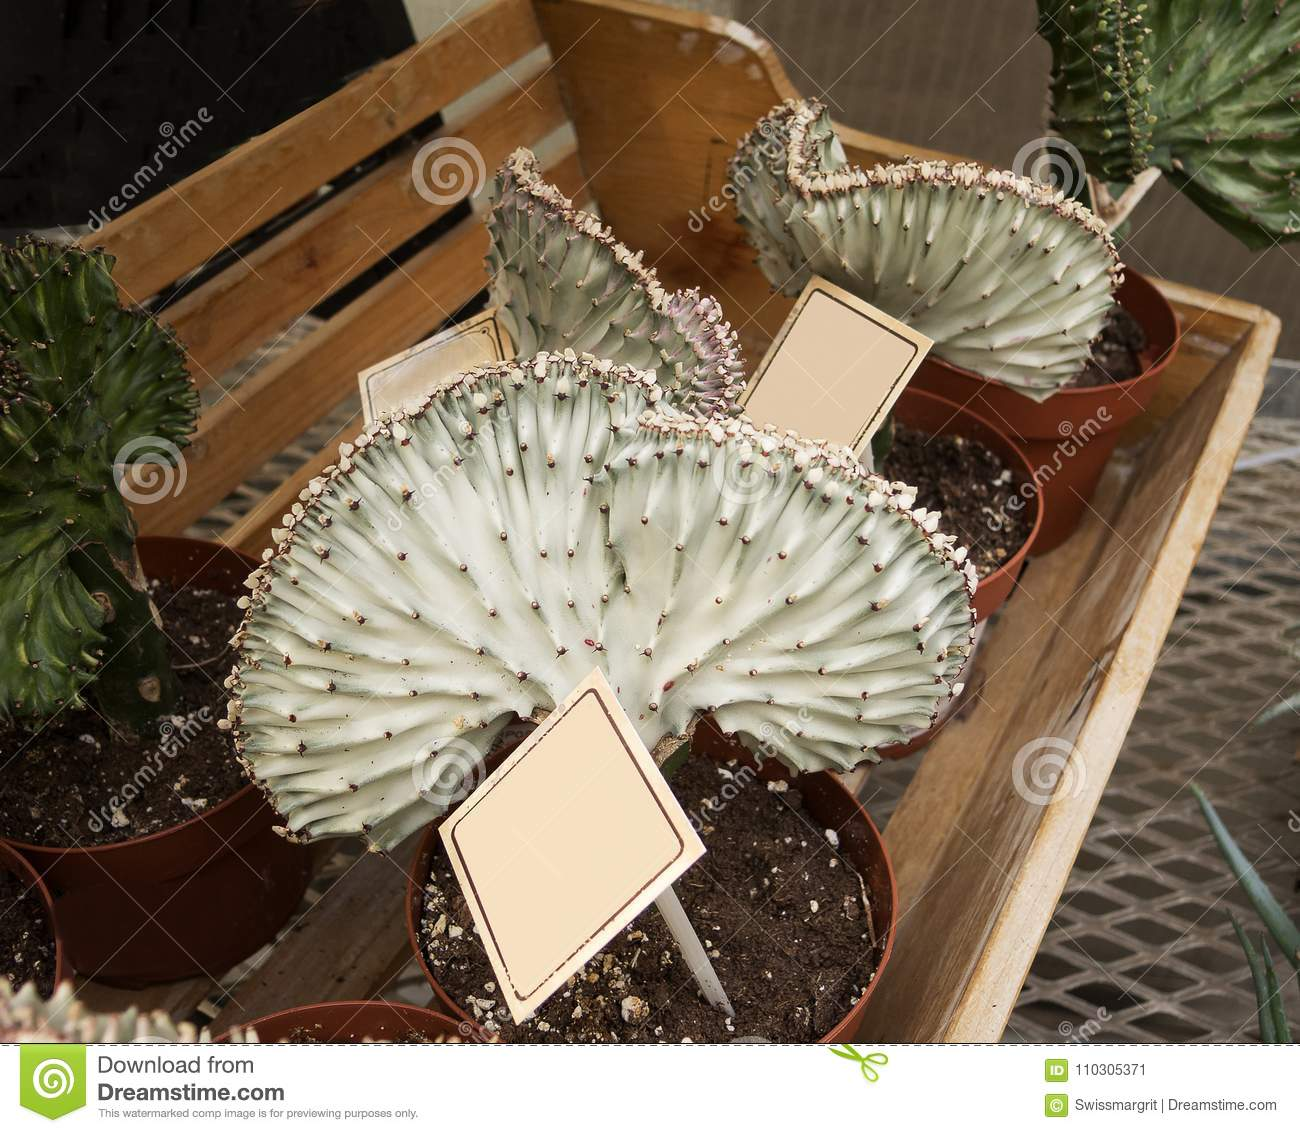 Terrific Coral Cactus On Display On A Bench Stock Image Image Of Caraccident5 Cool Chair Designs And Ideas Caraccident5Info